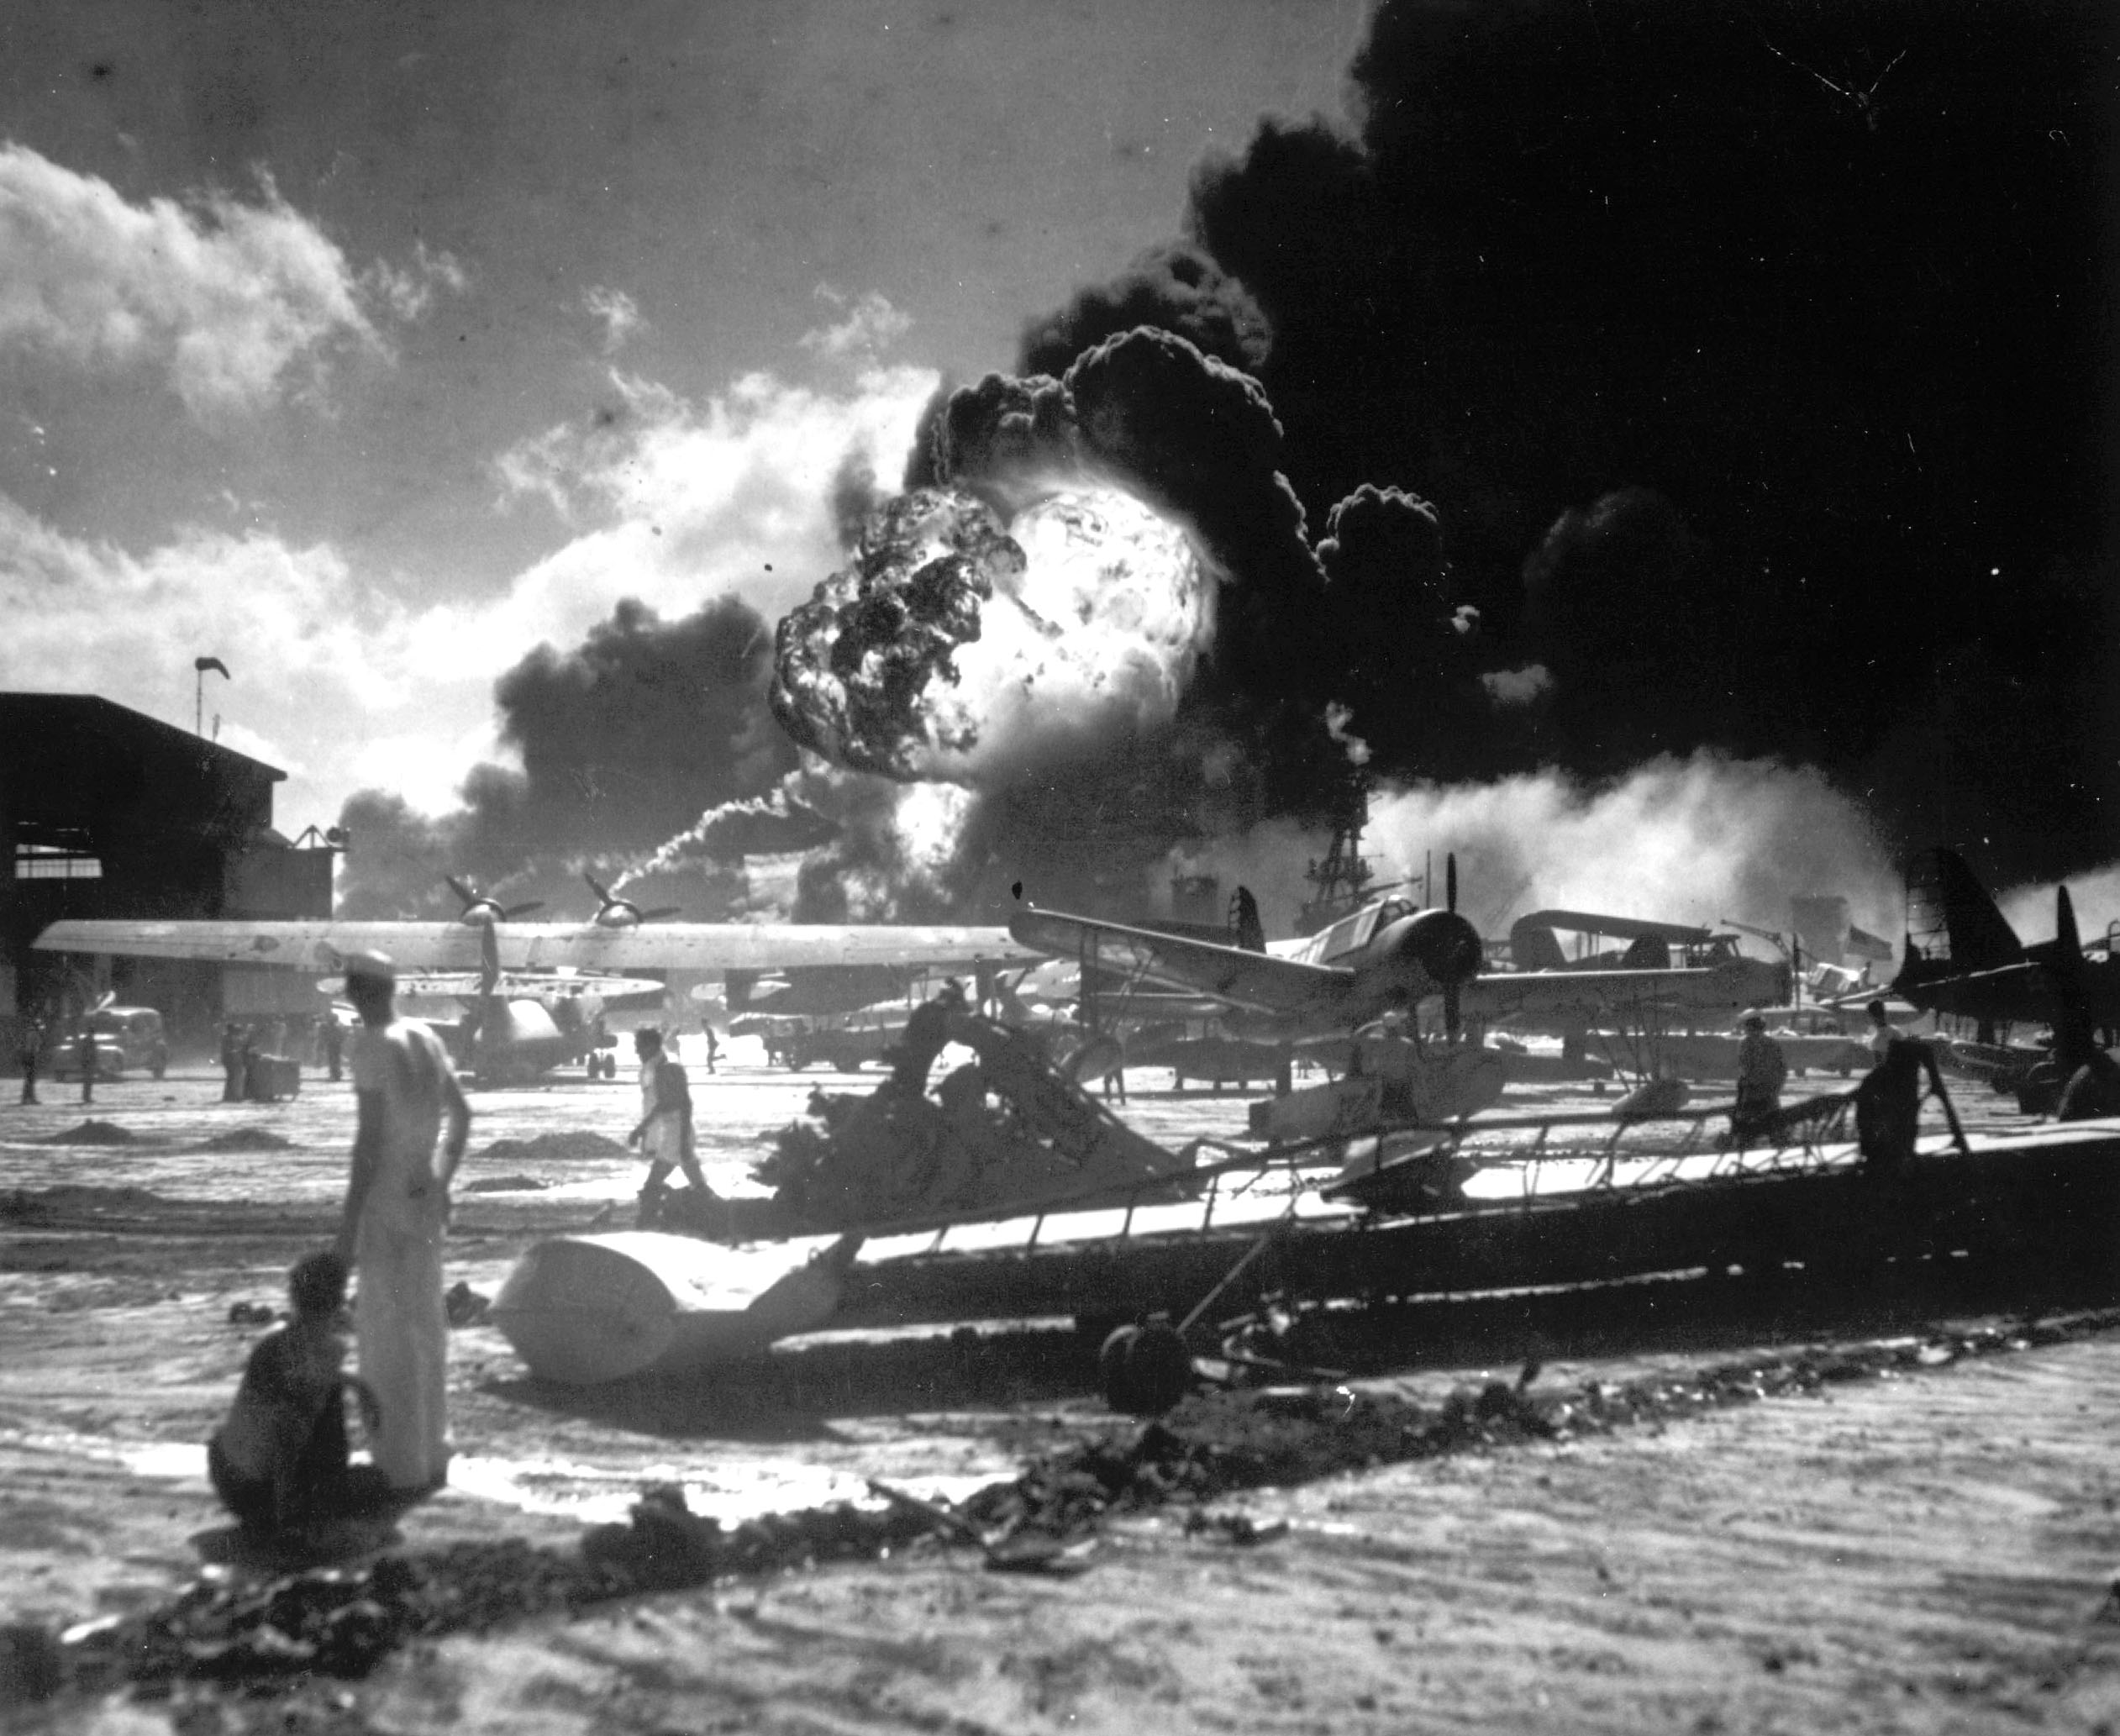 In this image provided by the U.S. Navy, sailors stand among wrecked airplanes at Ford Island Naval Air Station as they watch the explosion of the USS Shaw in the background, during the Japanese surprise attack on Pearl Harbor, Hawaii, on December 7, 1941. (AP Photo/U.S. Navy)